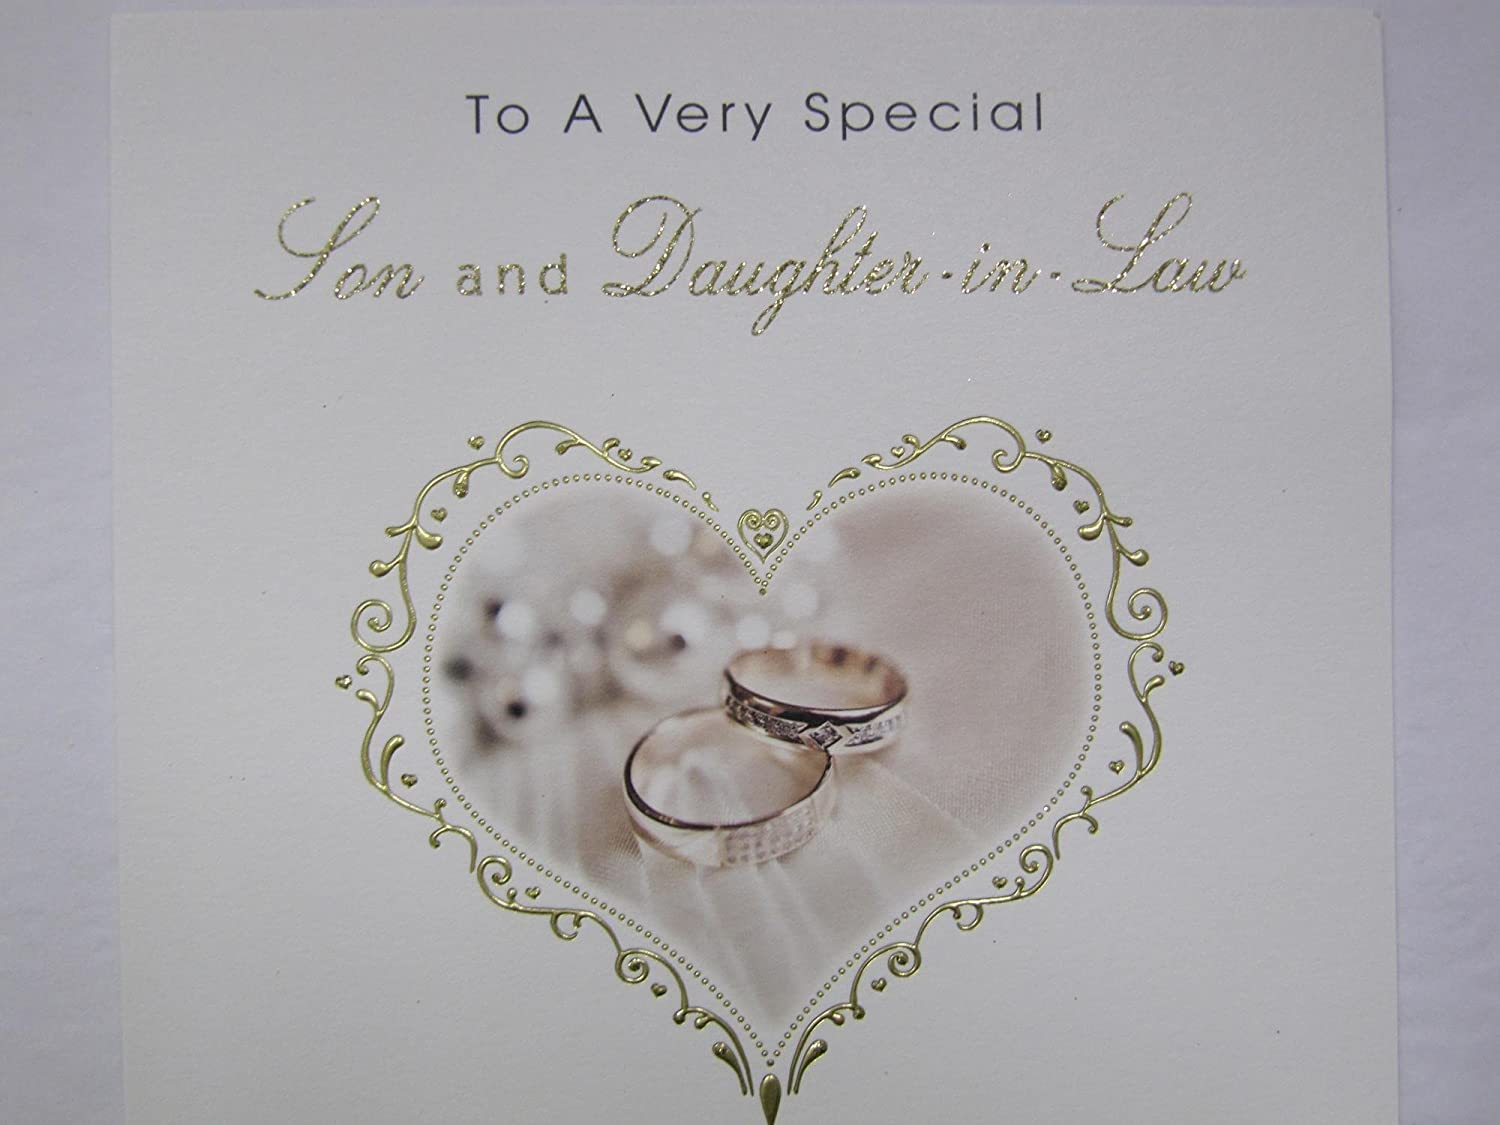 LARGE STUNNING LOVELY TOP RANGE SON /& DAUGHTER-IN-LAW WEDDING DAY GREETING CARD